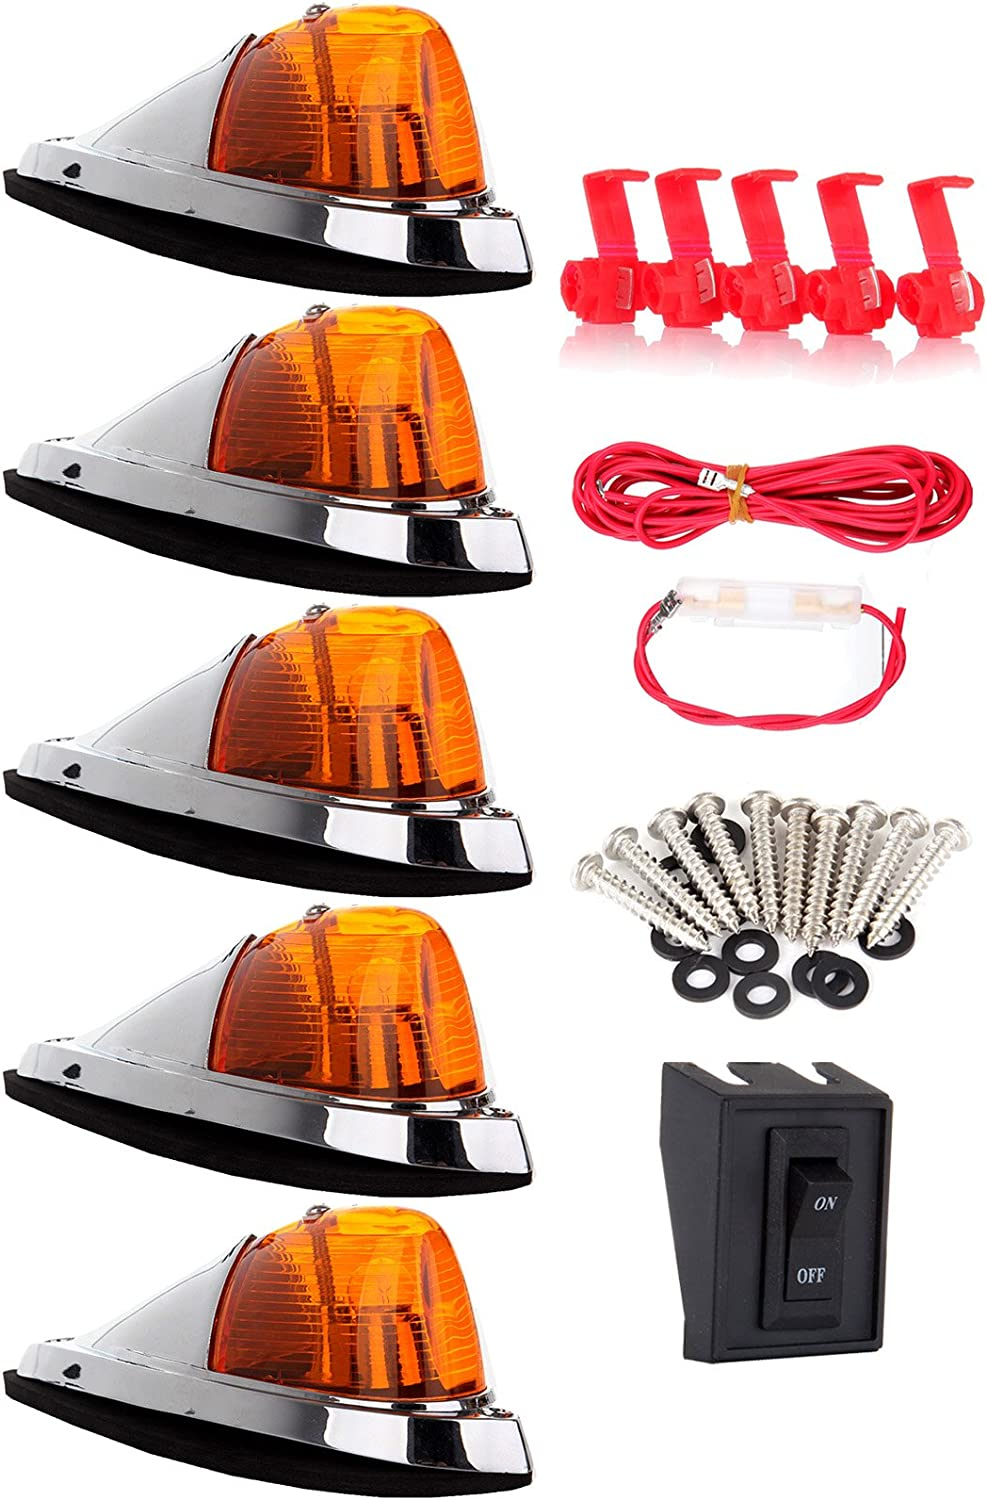 1 Set Wiring Pack Switch Assembly Wire Harness For Truck Trailer Waterproof Semi-trailer ECCPP 5x Amber Cab Marker Roof Top Clearance Light Replacement